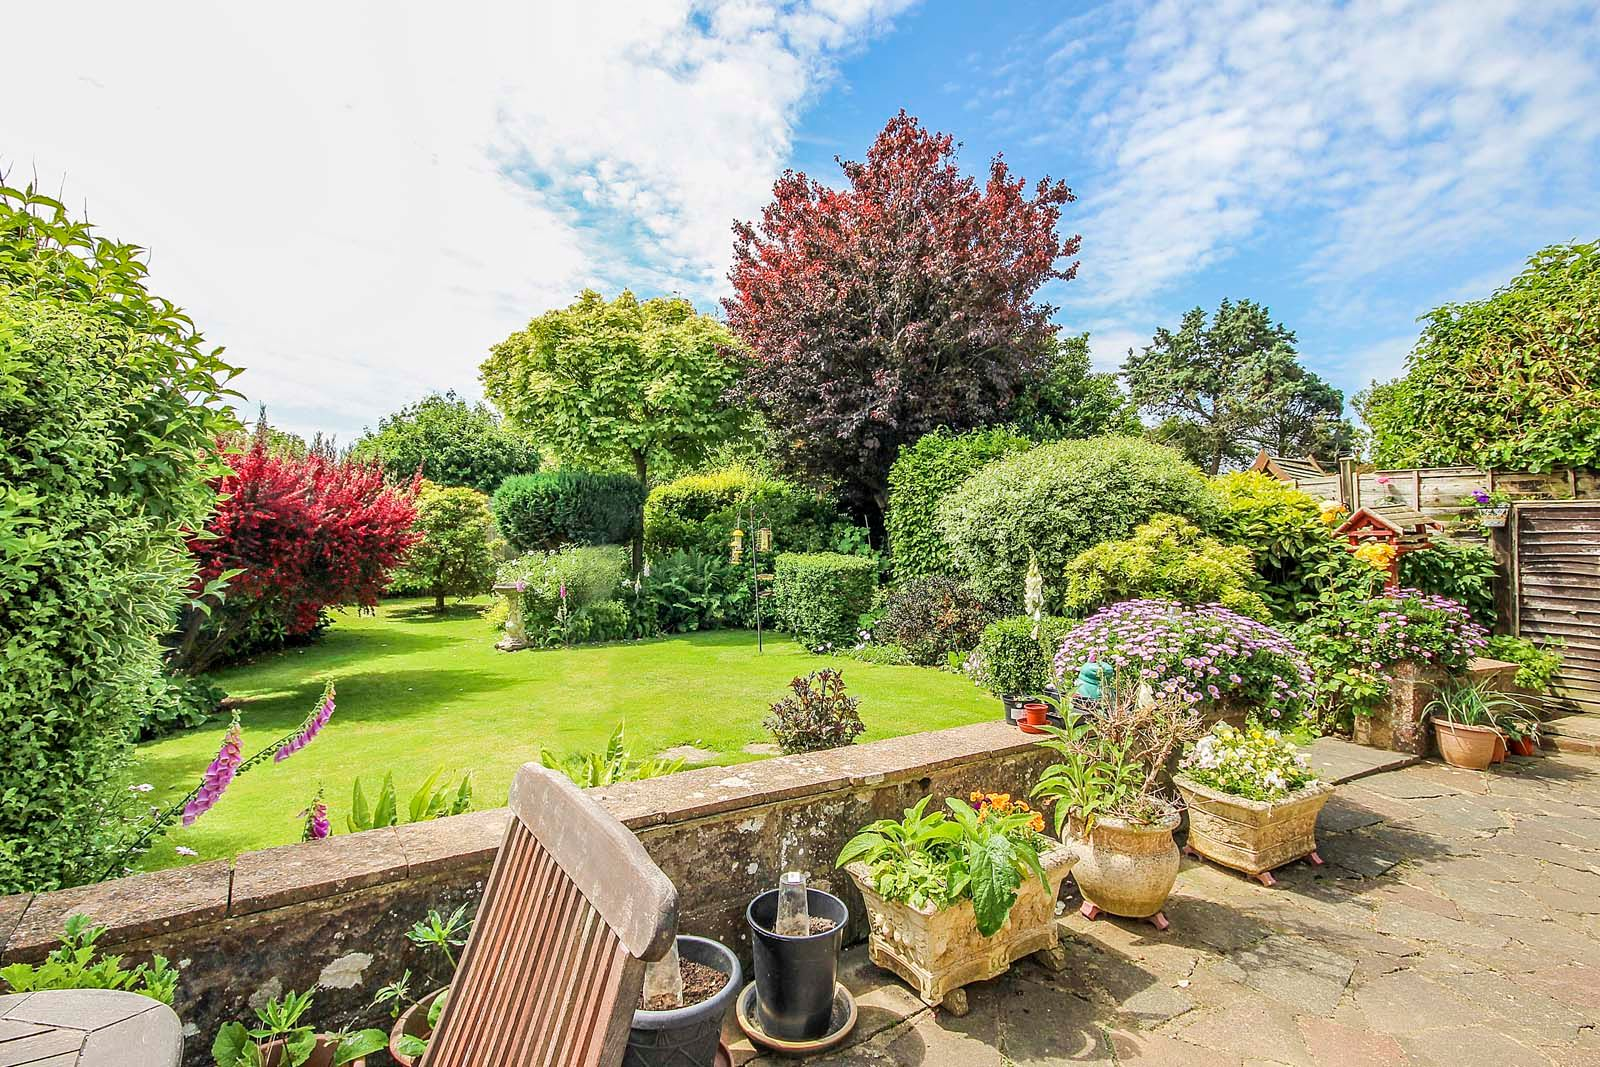 3 bed House for sale in Rustington - Rear garden (Property Image 2)